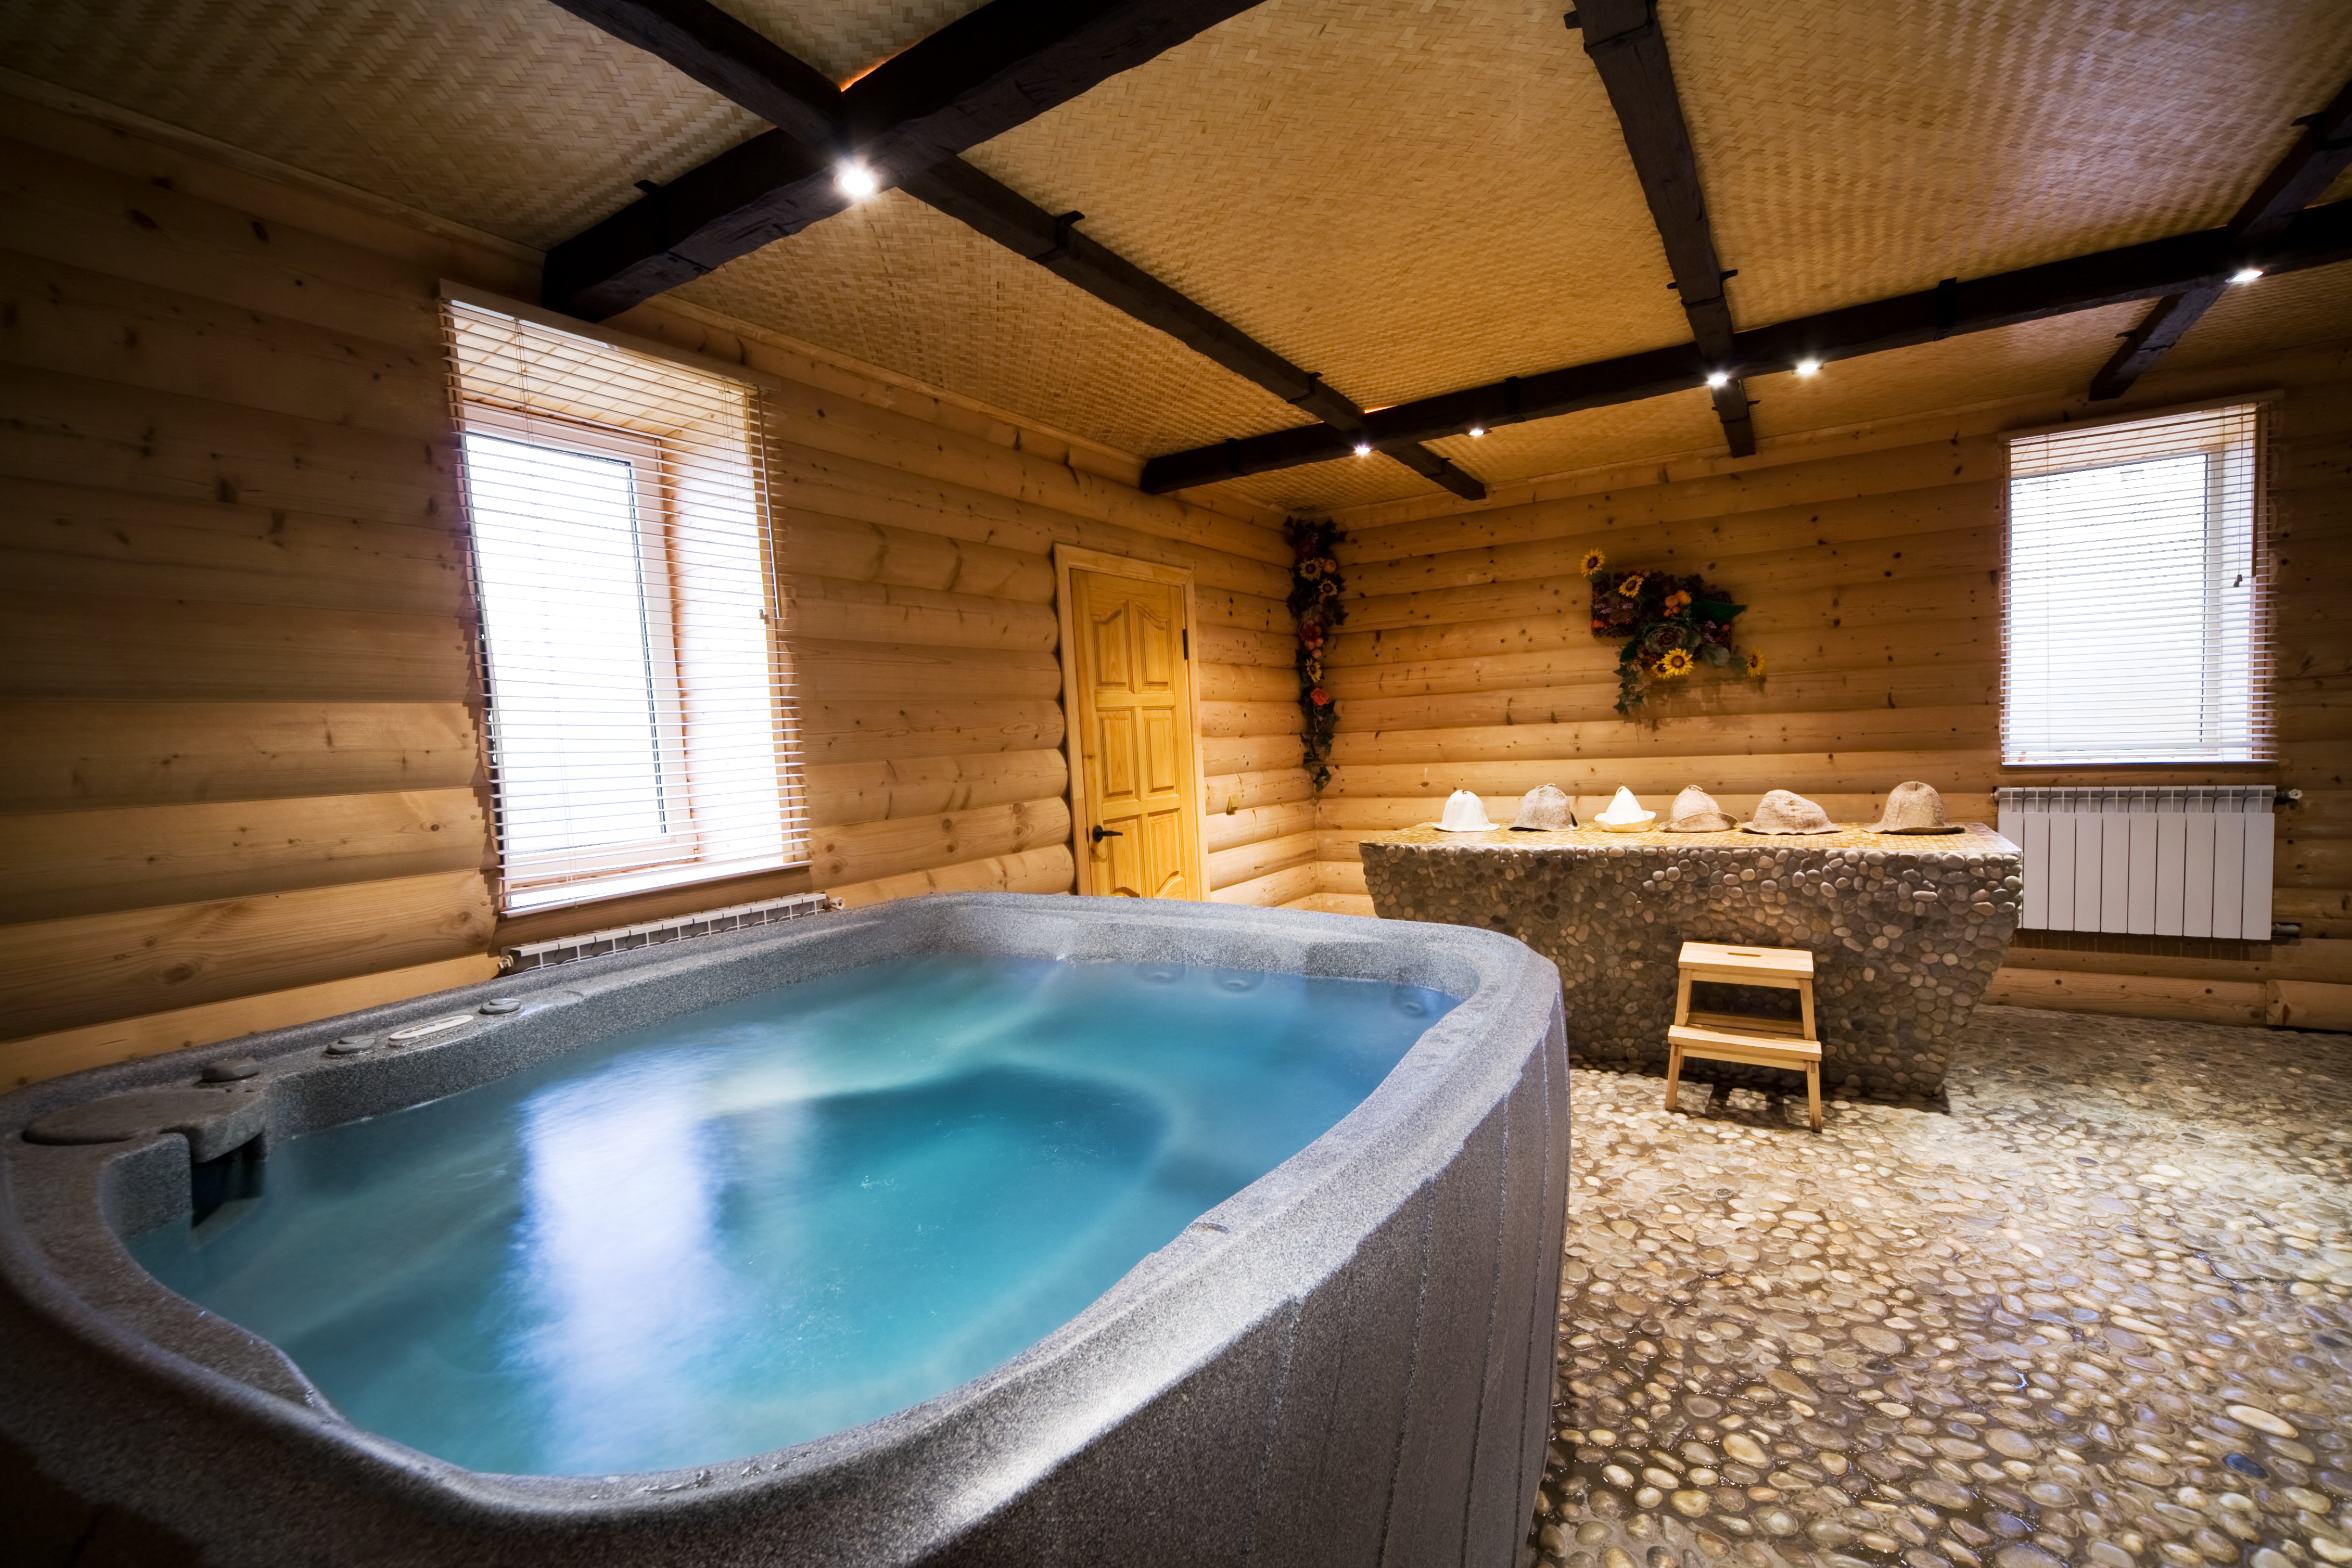 How To Fix The 5 Most Common Hot Tub Problems Aqua Spas Pools